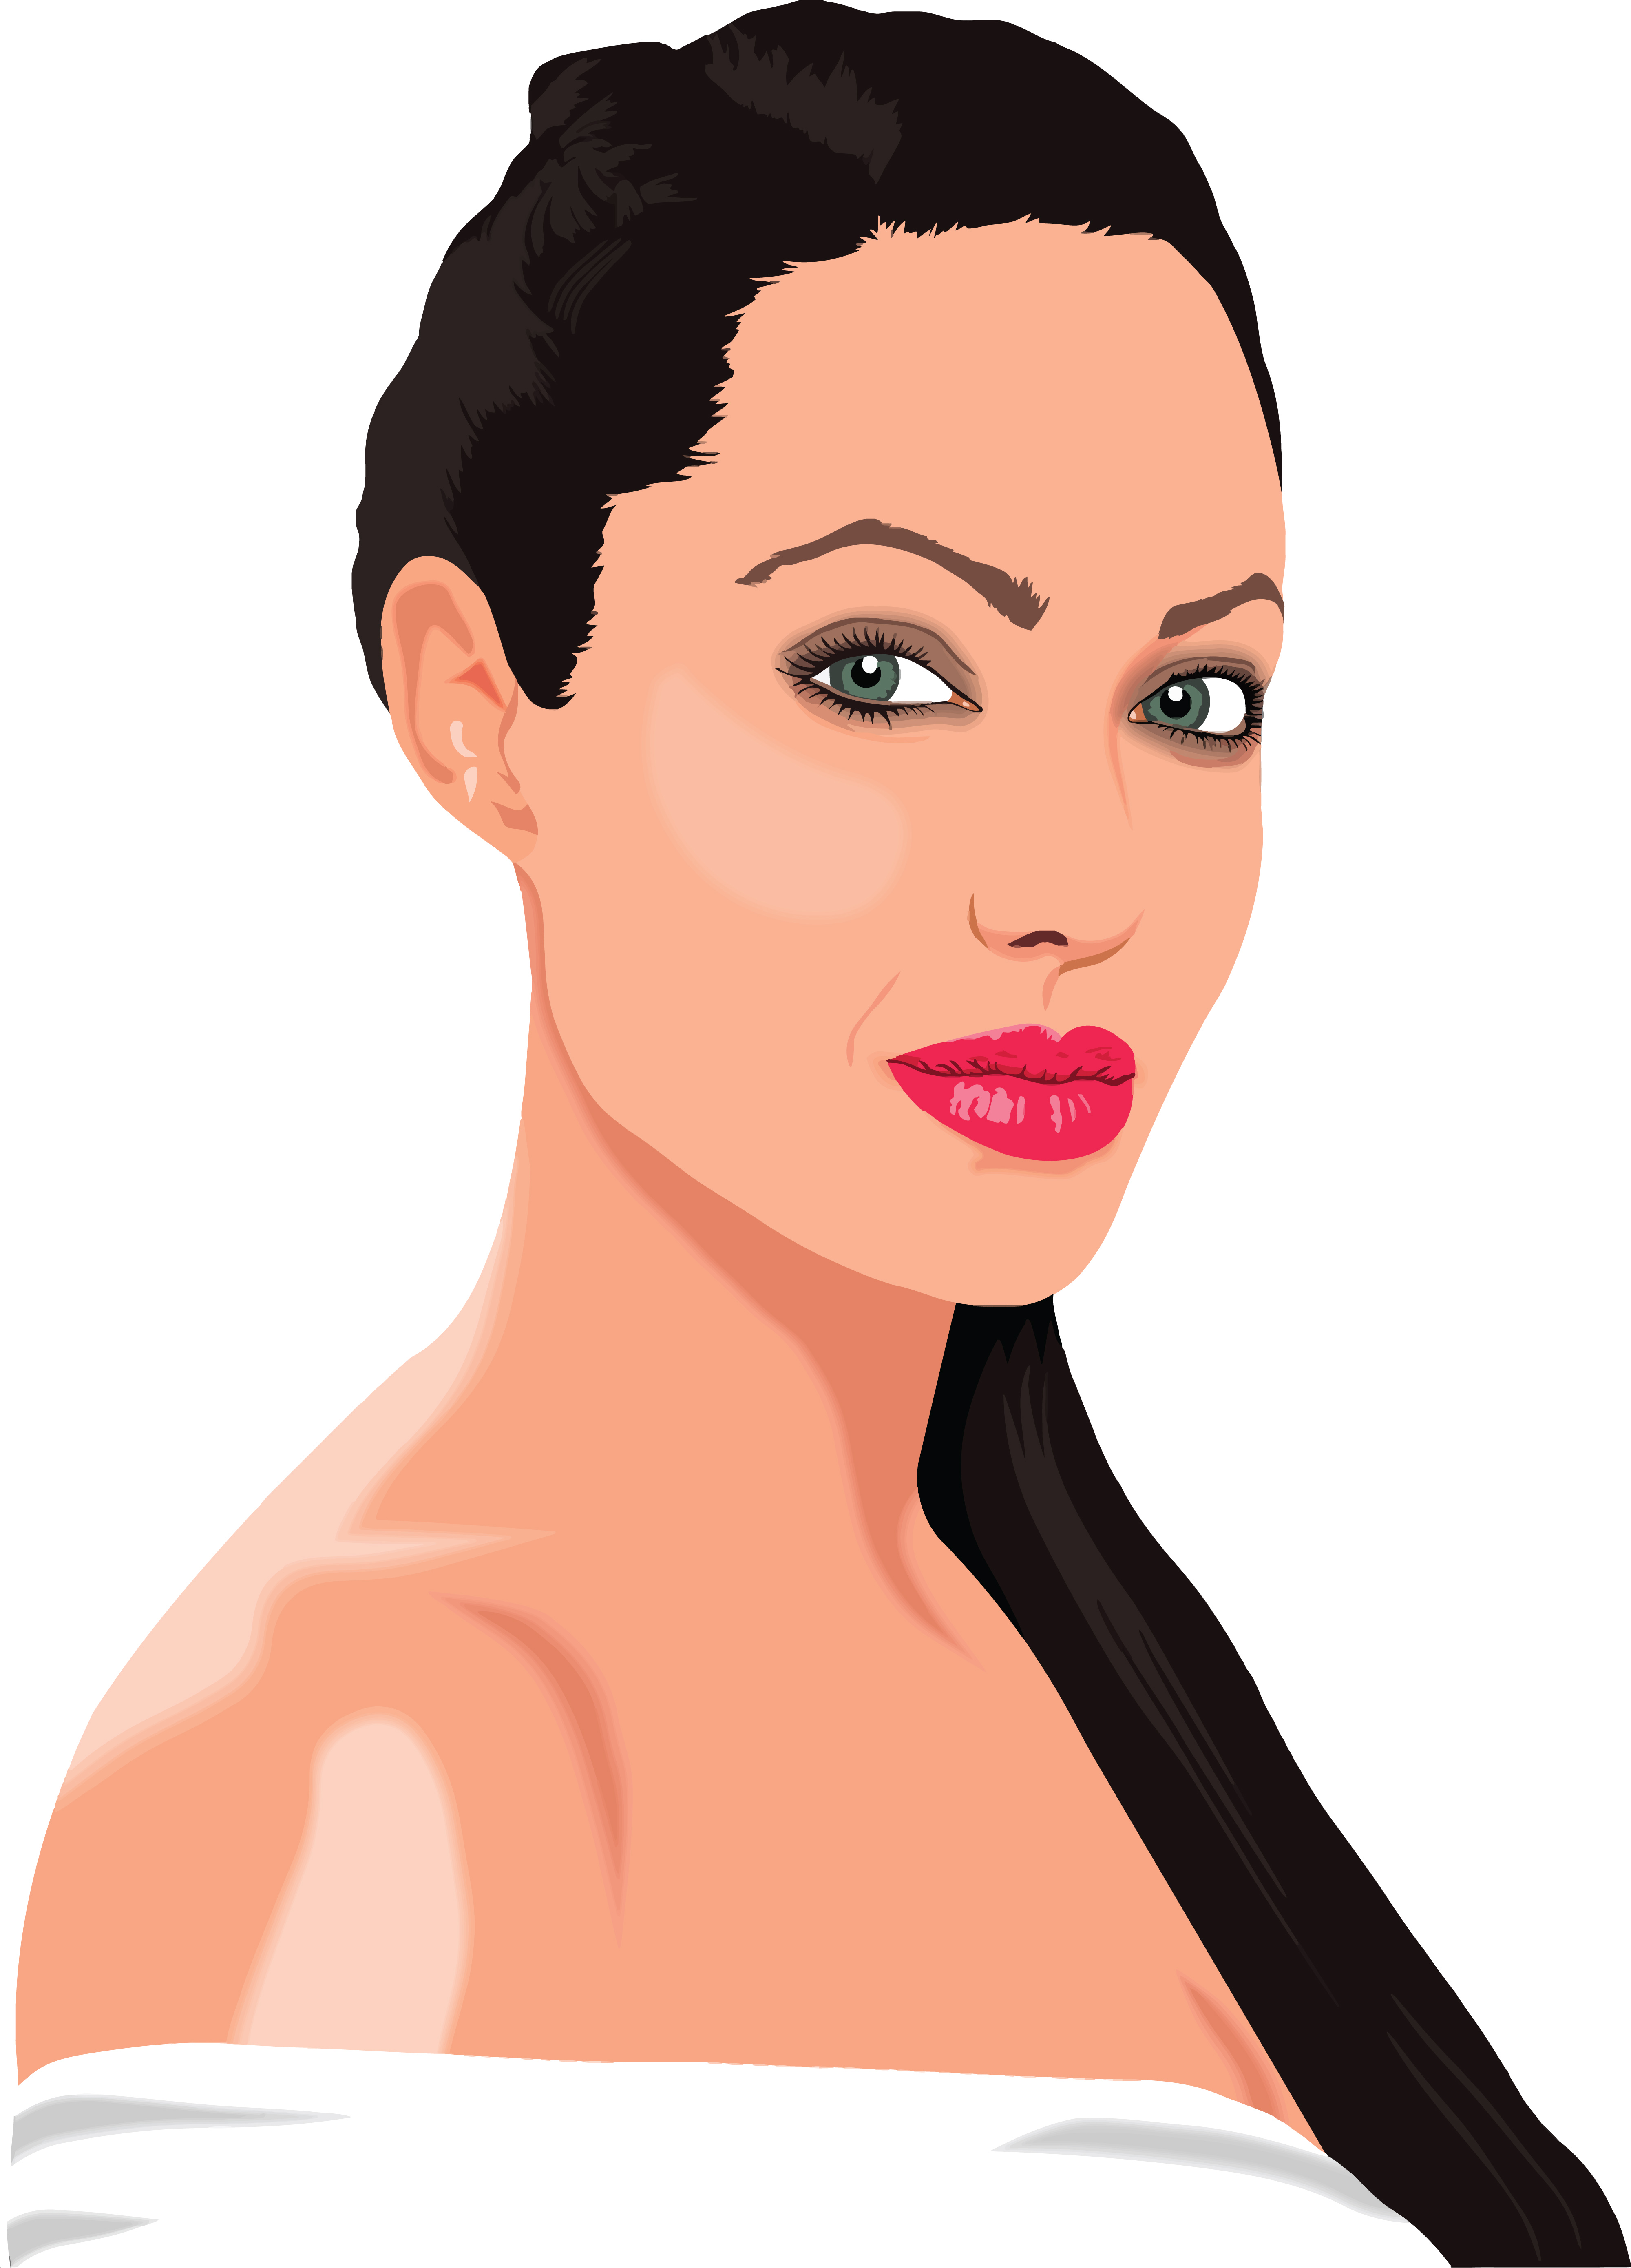 Free Clipart Of Angelina Jolie #00011225-Free Clipart Of Angelina Jolie #00011225 .-18